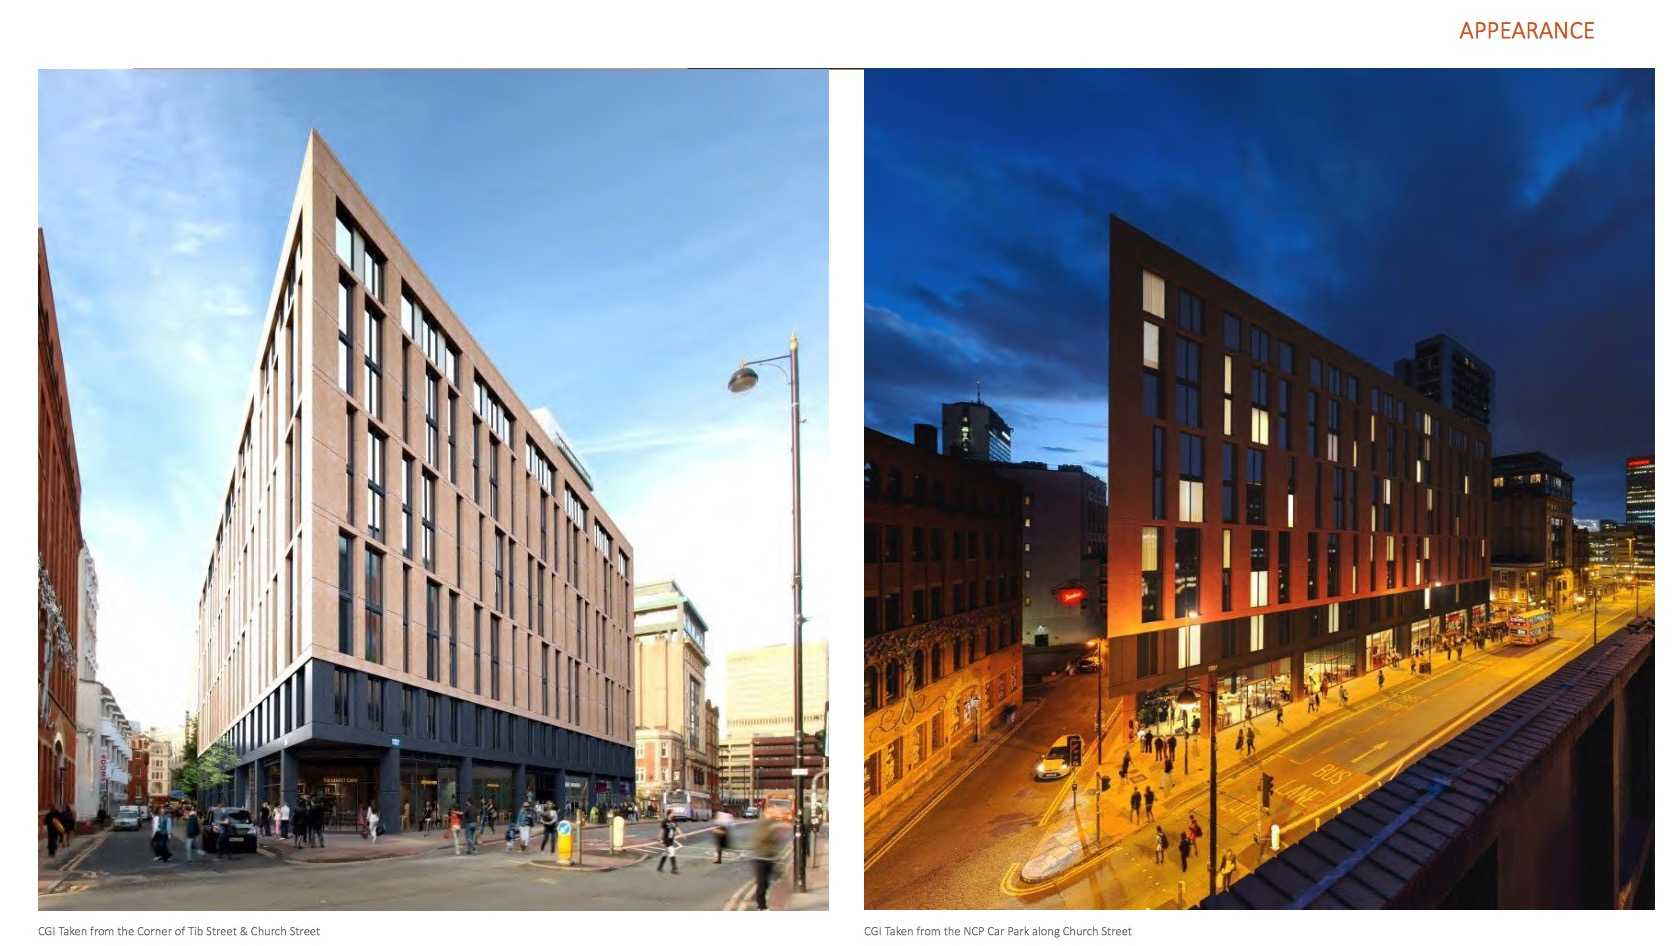 Citu nq apartment manchester developer appointed - Apple store victoria gardens appointment ...